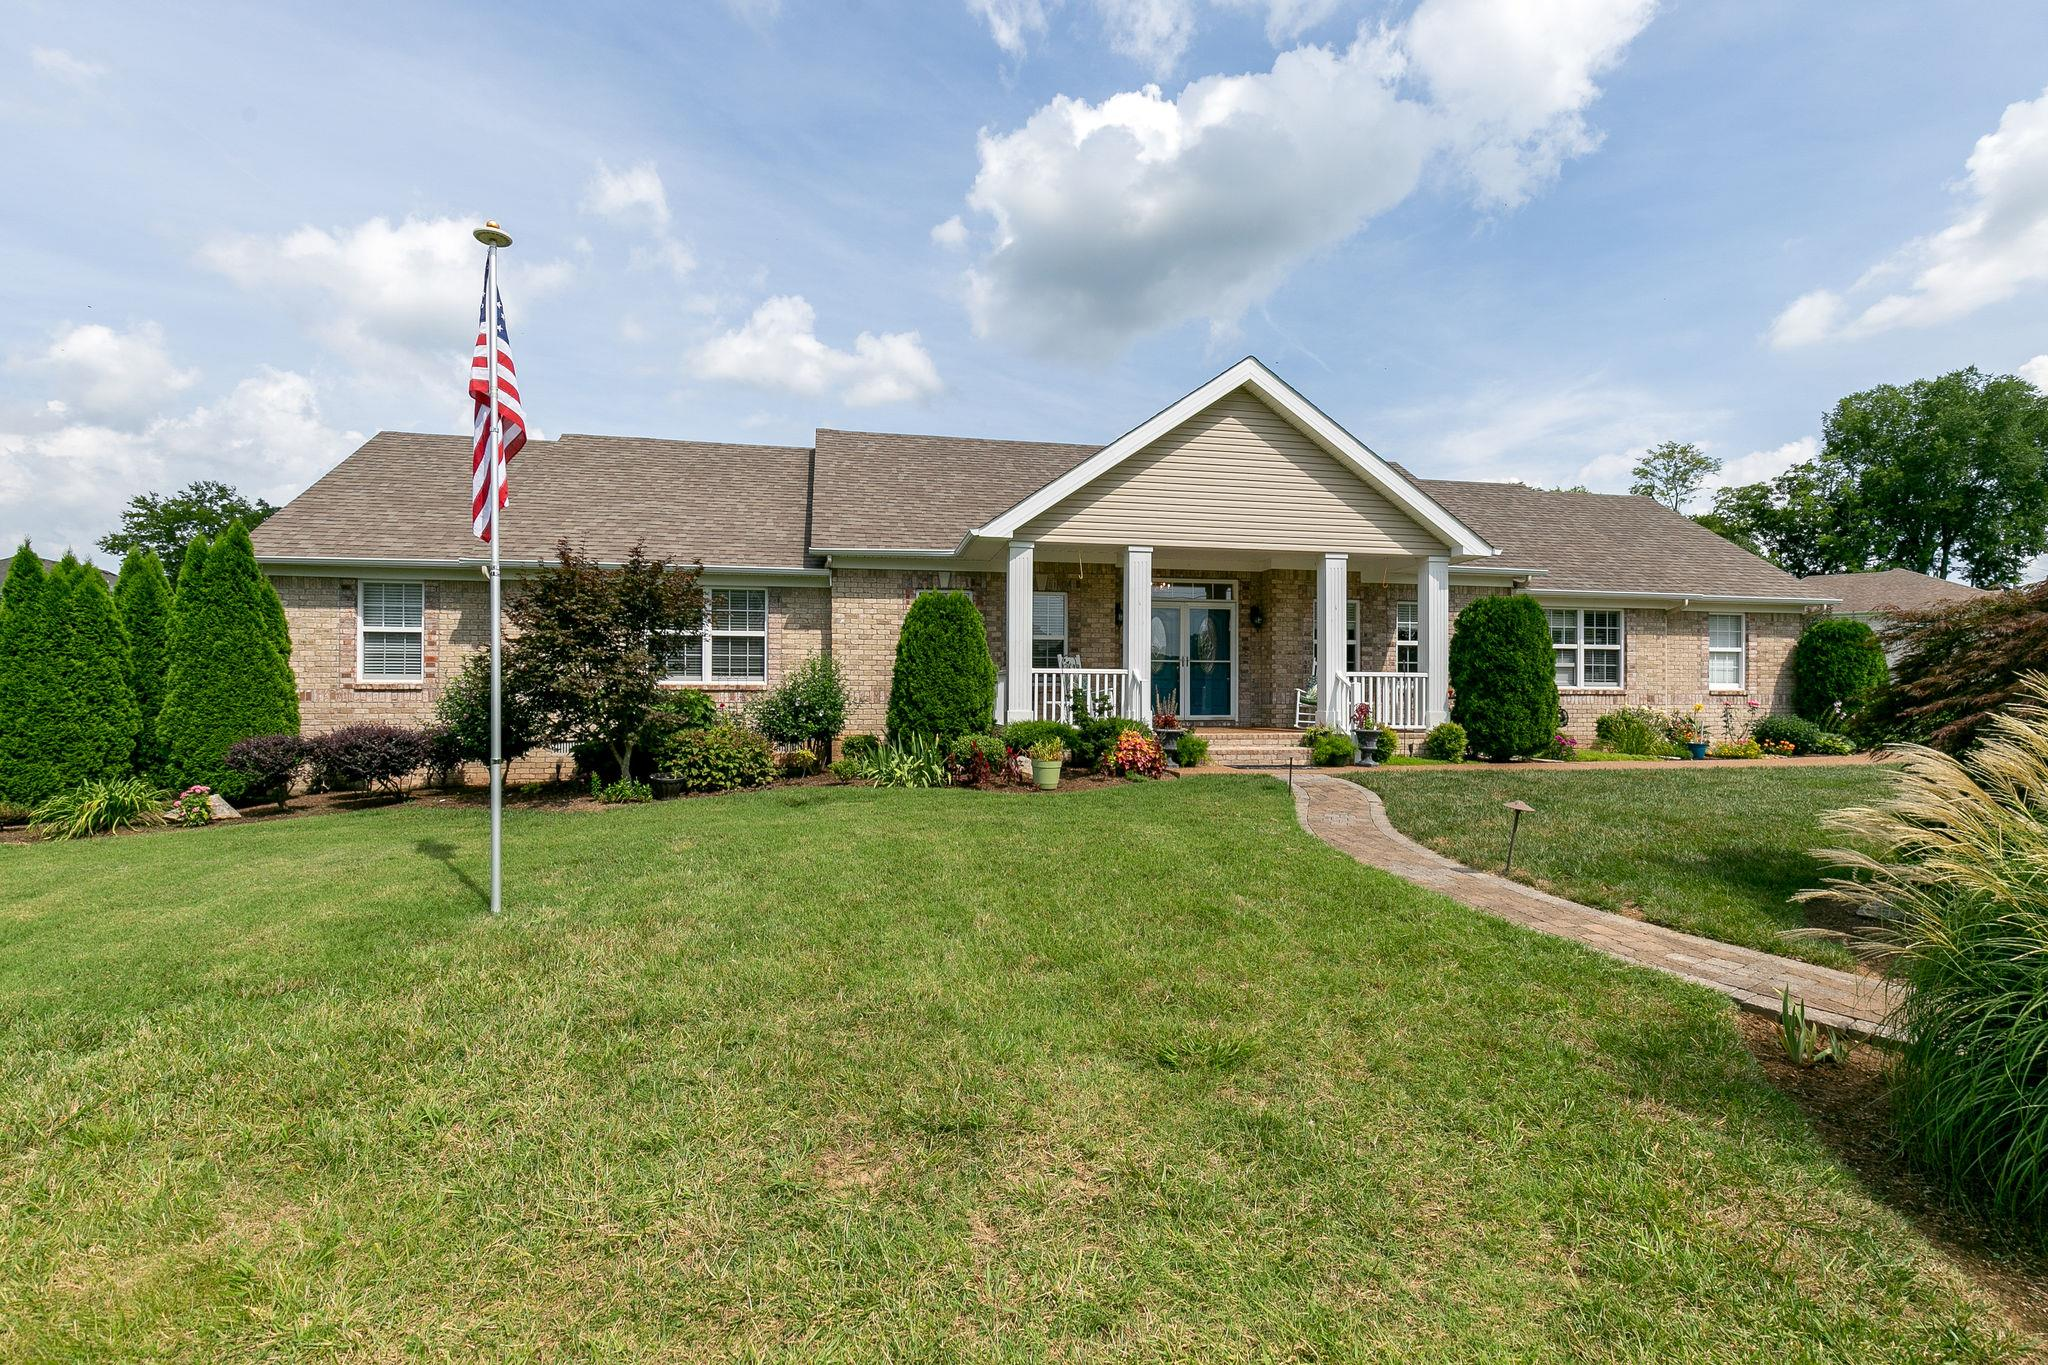 614 Natalie Ln, Spring Hill, TN 37174 - Spring Hill, TN real estate listing